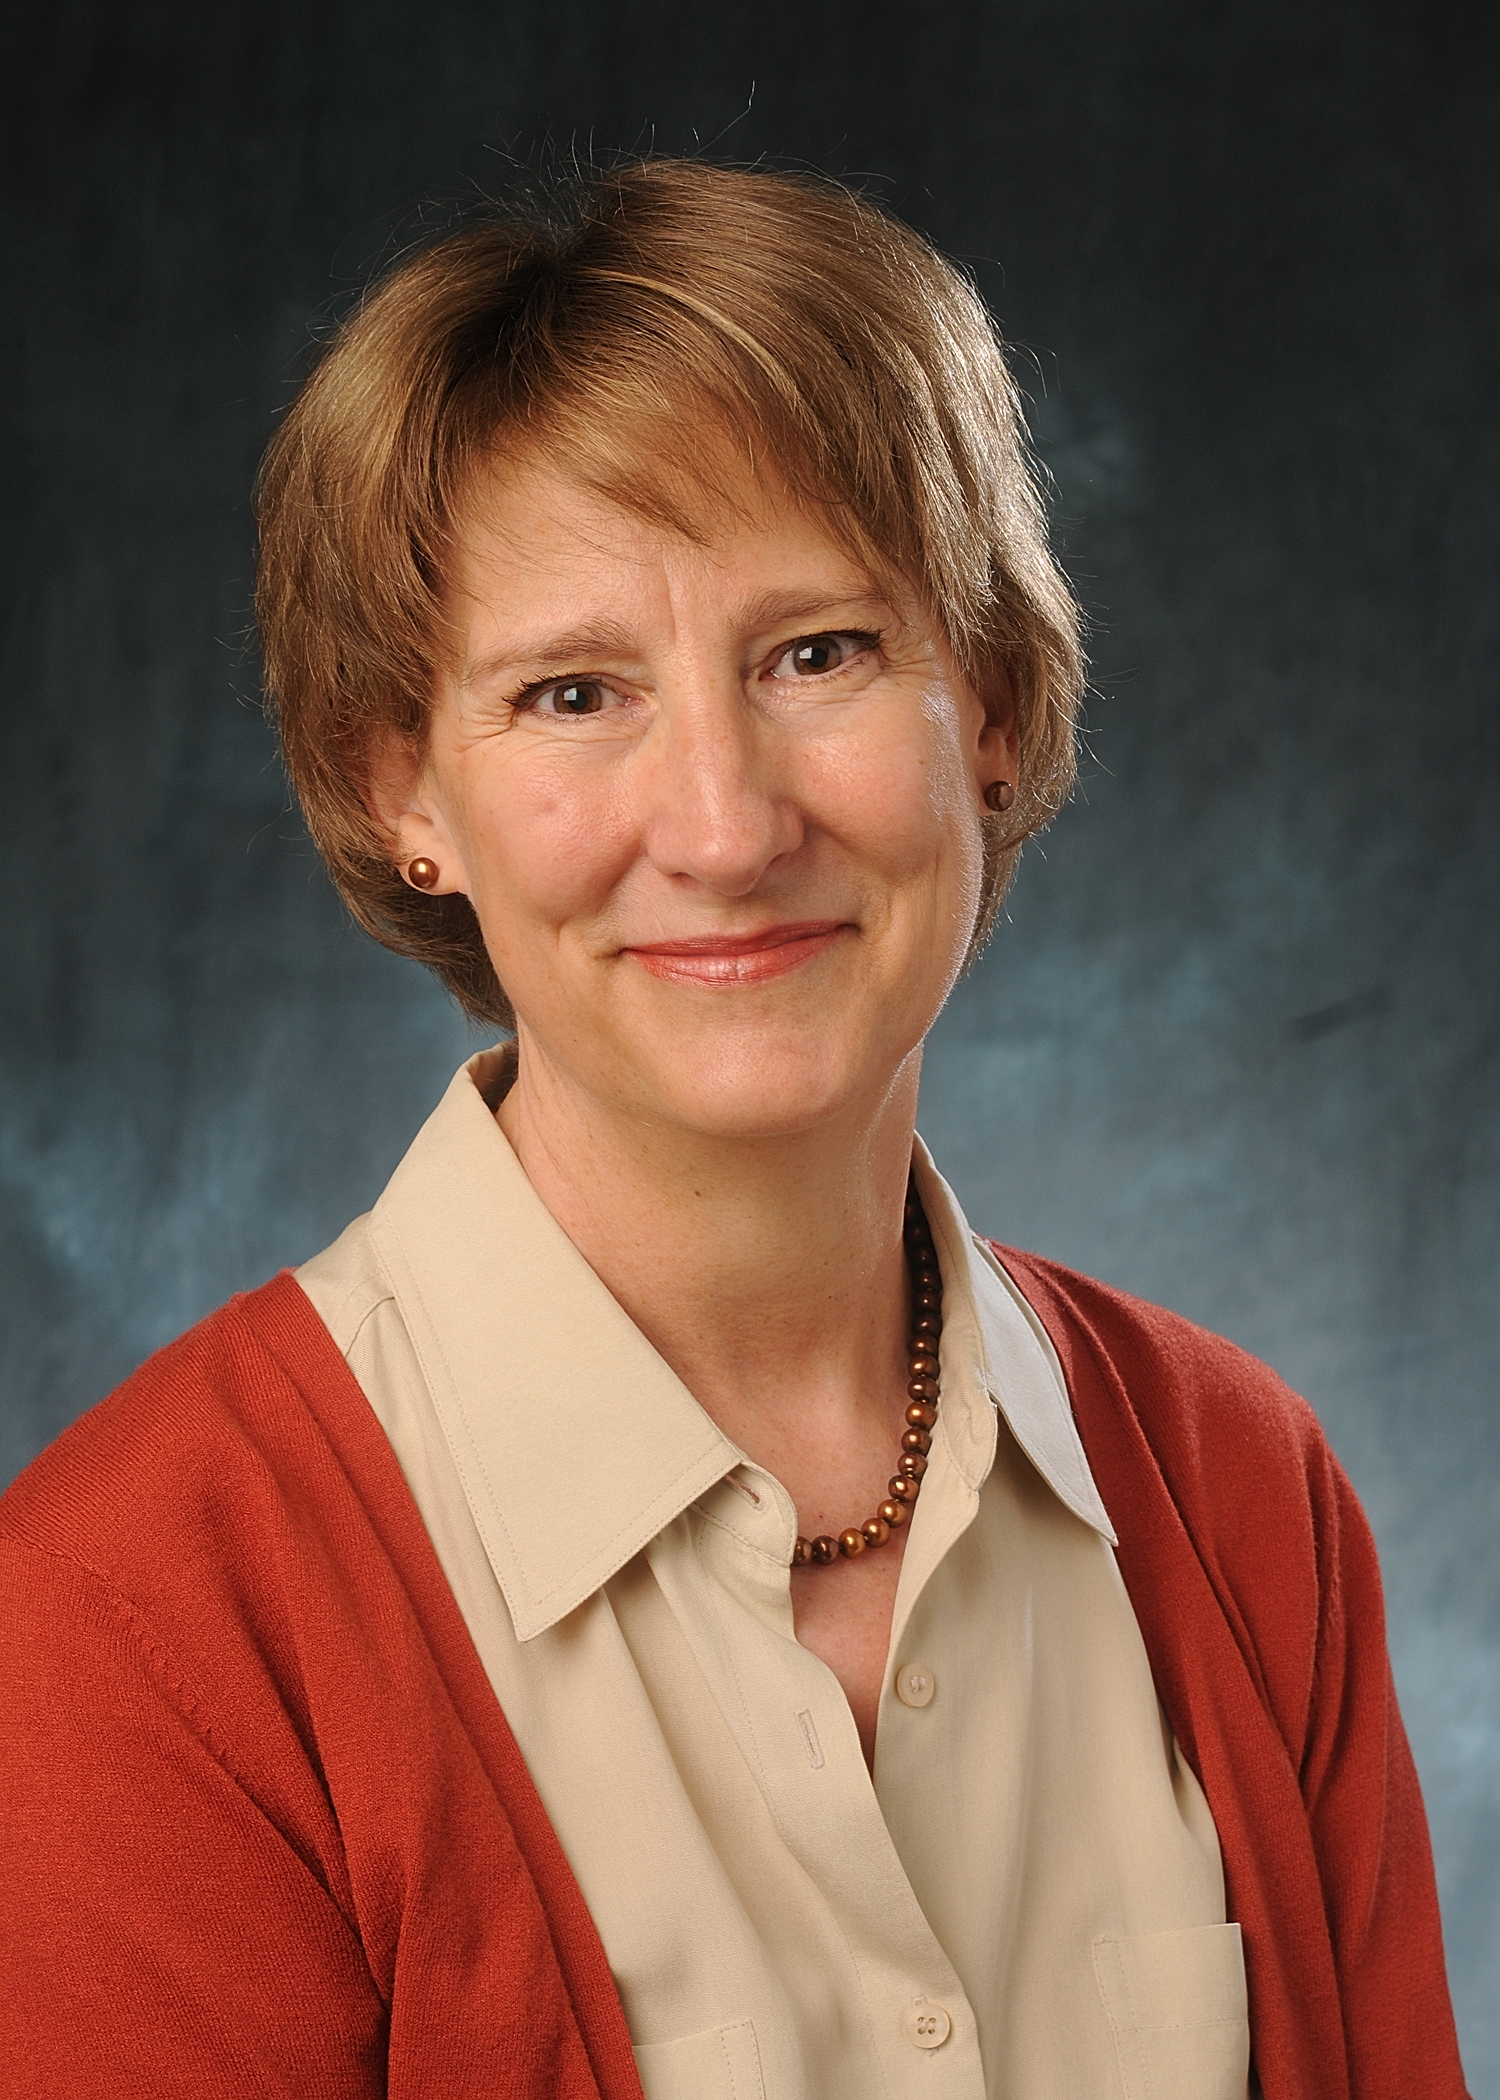 Barbara Bintliff, Joseph C. Hutcheson Professor in Law and Director, Tarlton Law Library/Jamail Center for Legal Research at the University of Texas School  of Law